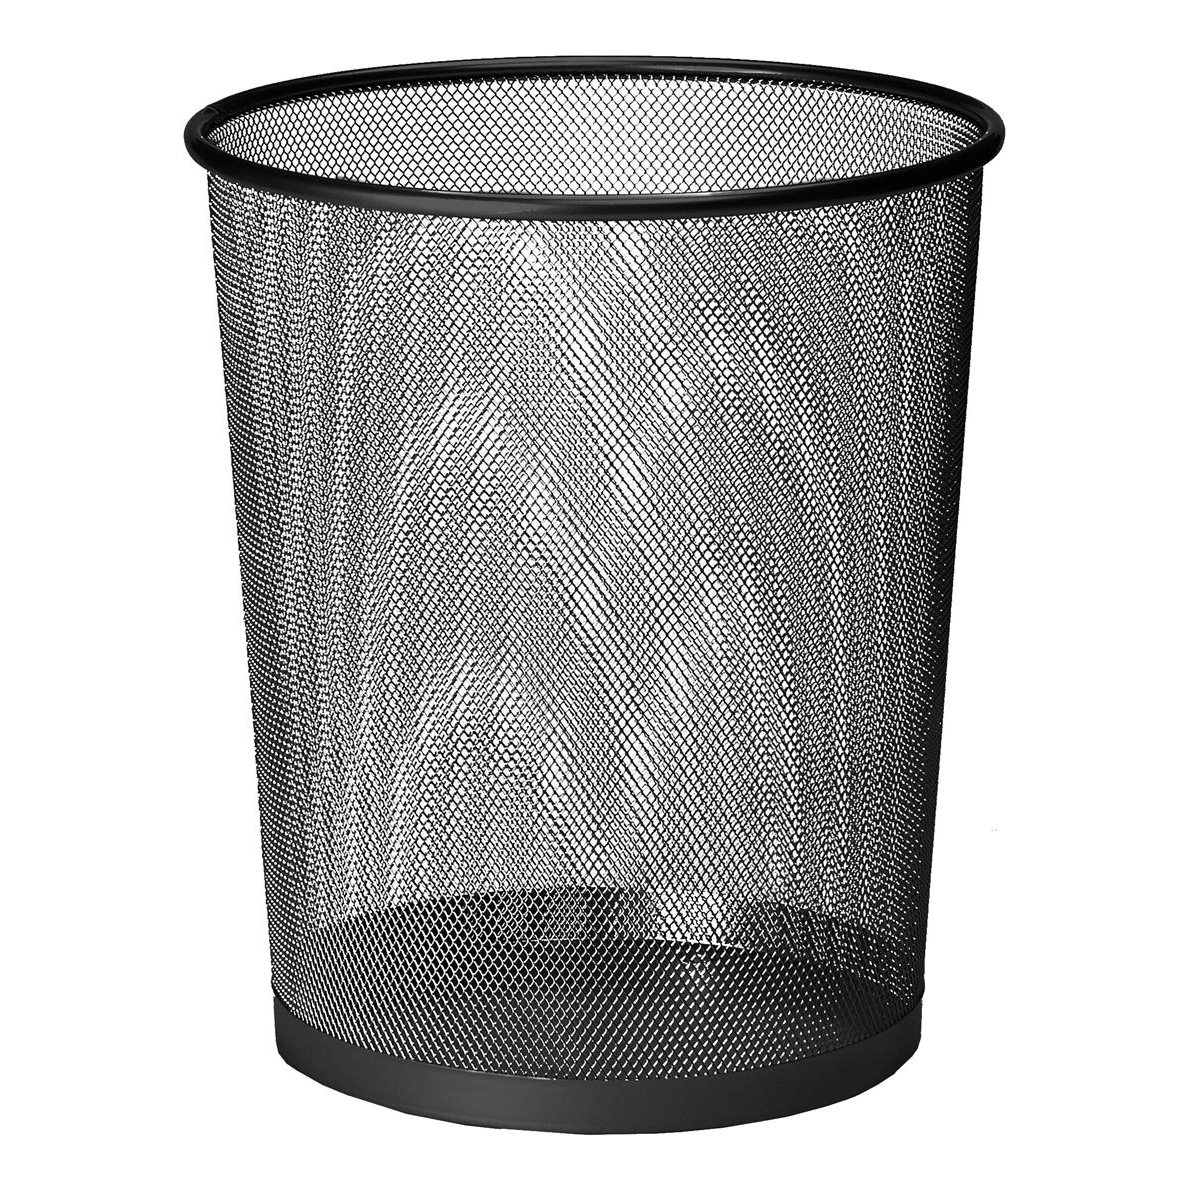 Rubbish Bins 5 Star Office Mesh Waste Bin Lightweight Sturdy Scratch Resistant 15-20 Litres DxH 305x345mm Black